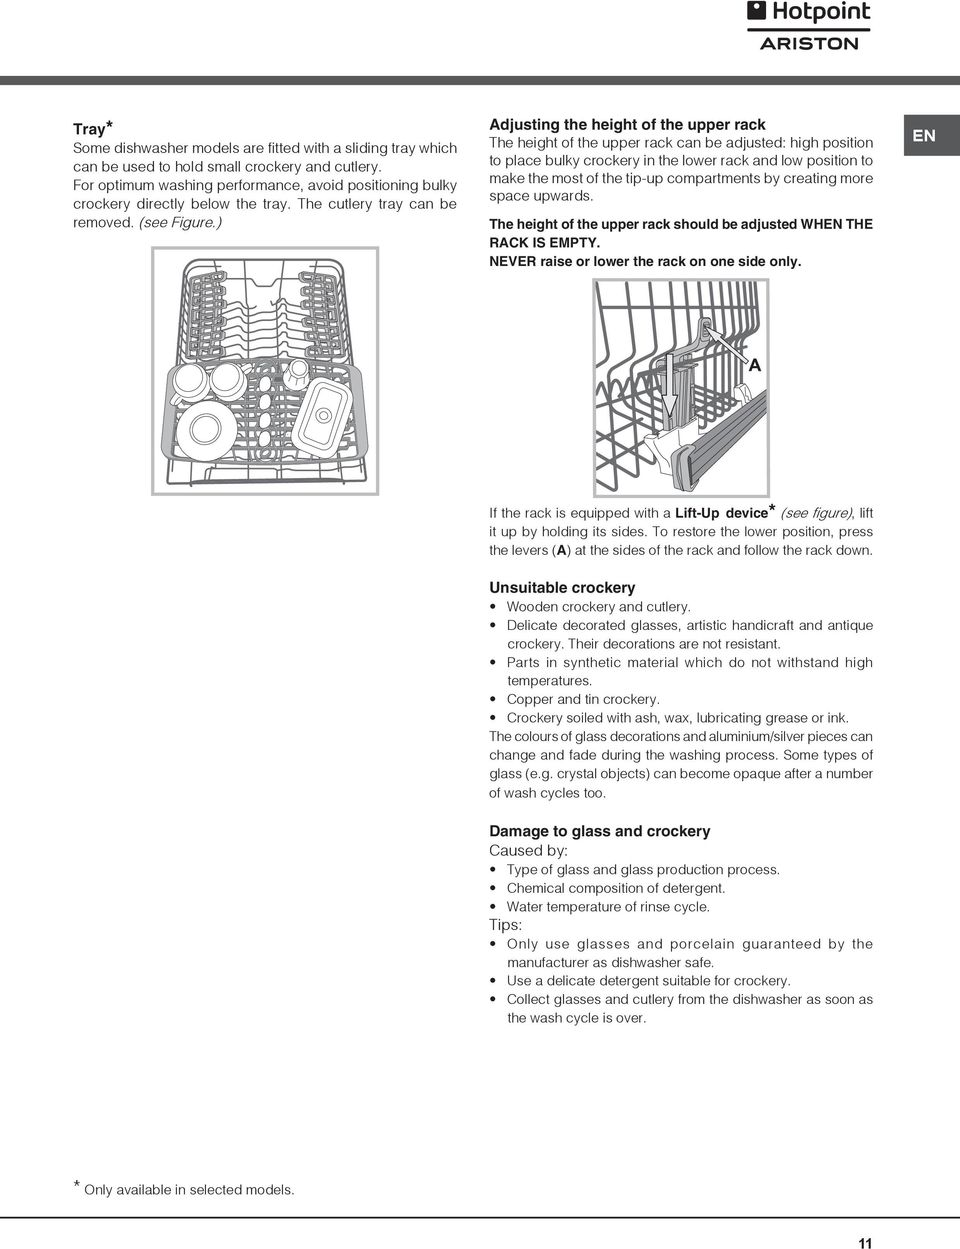 ) Adjusting the height of the upper rack The height of the upper rack can be adjusted: high position to place bulky crockery in the lower rack and low position to make the most of the tip-up